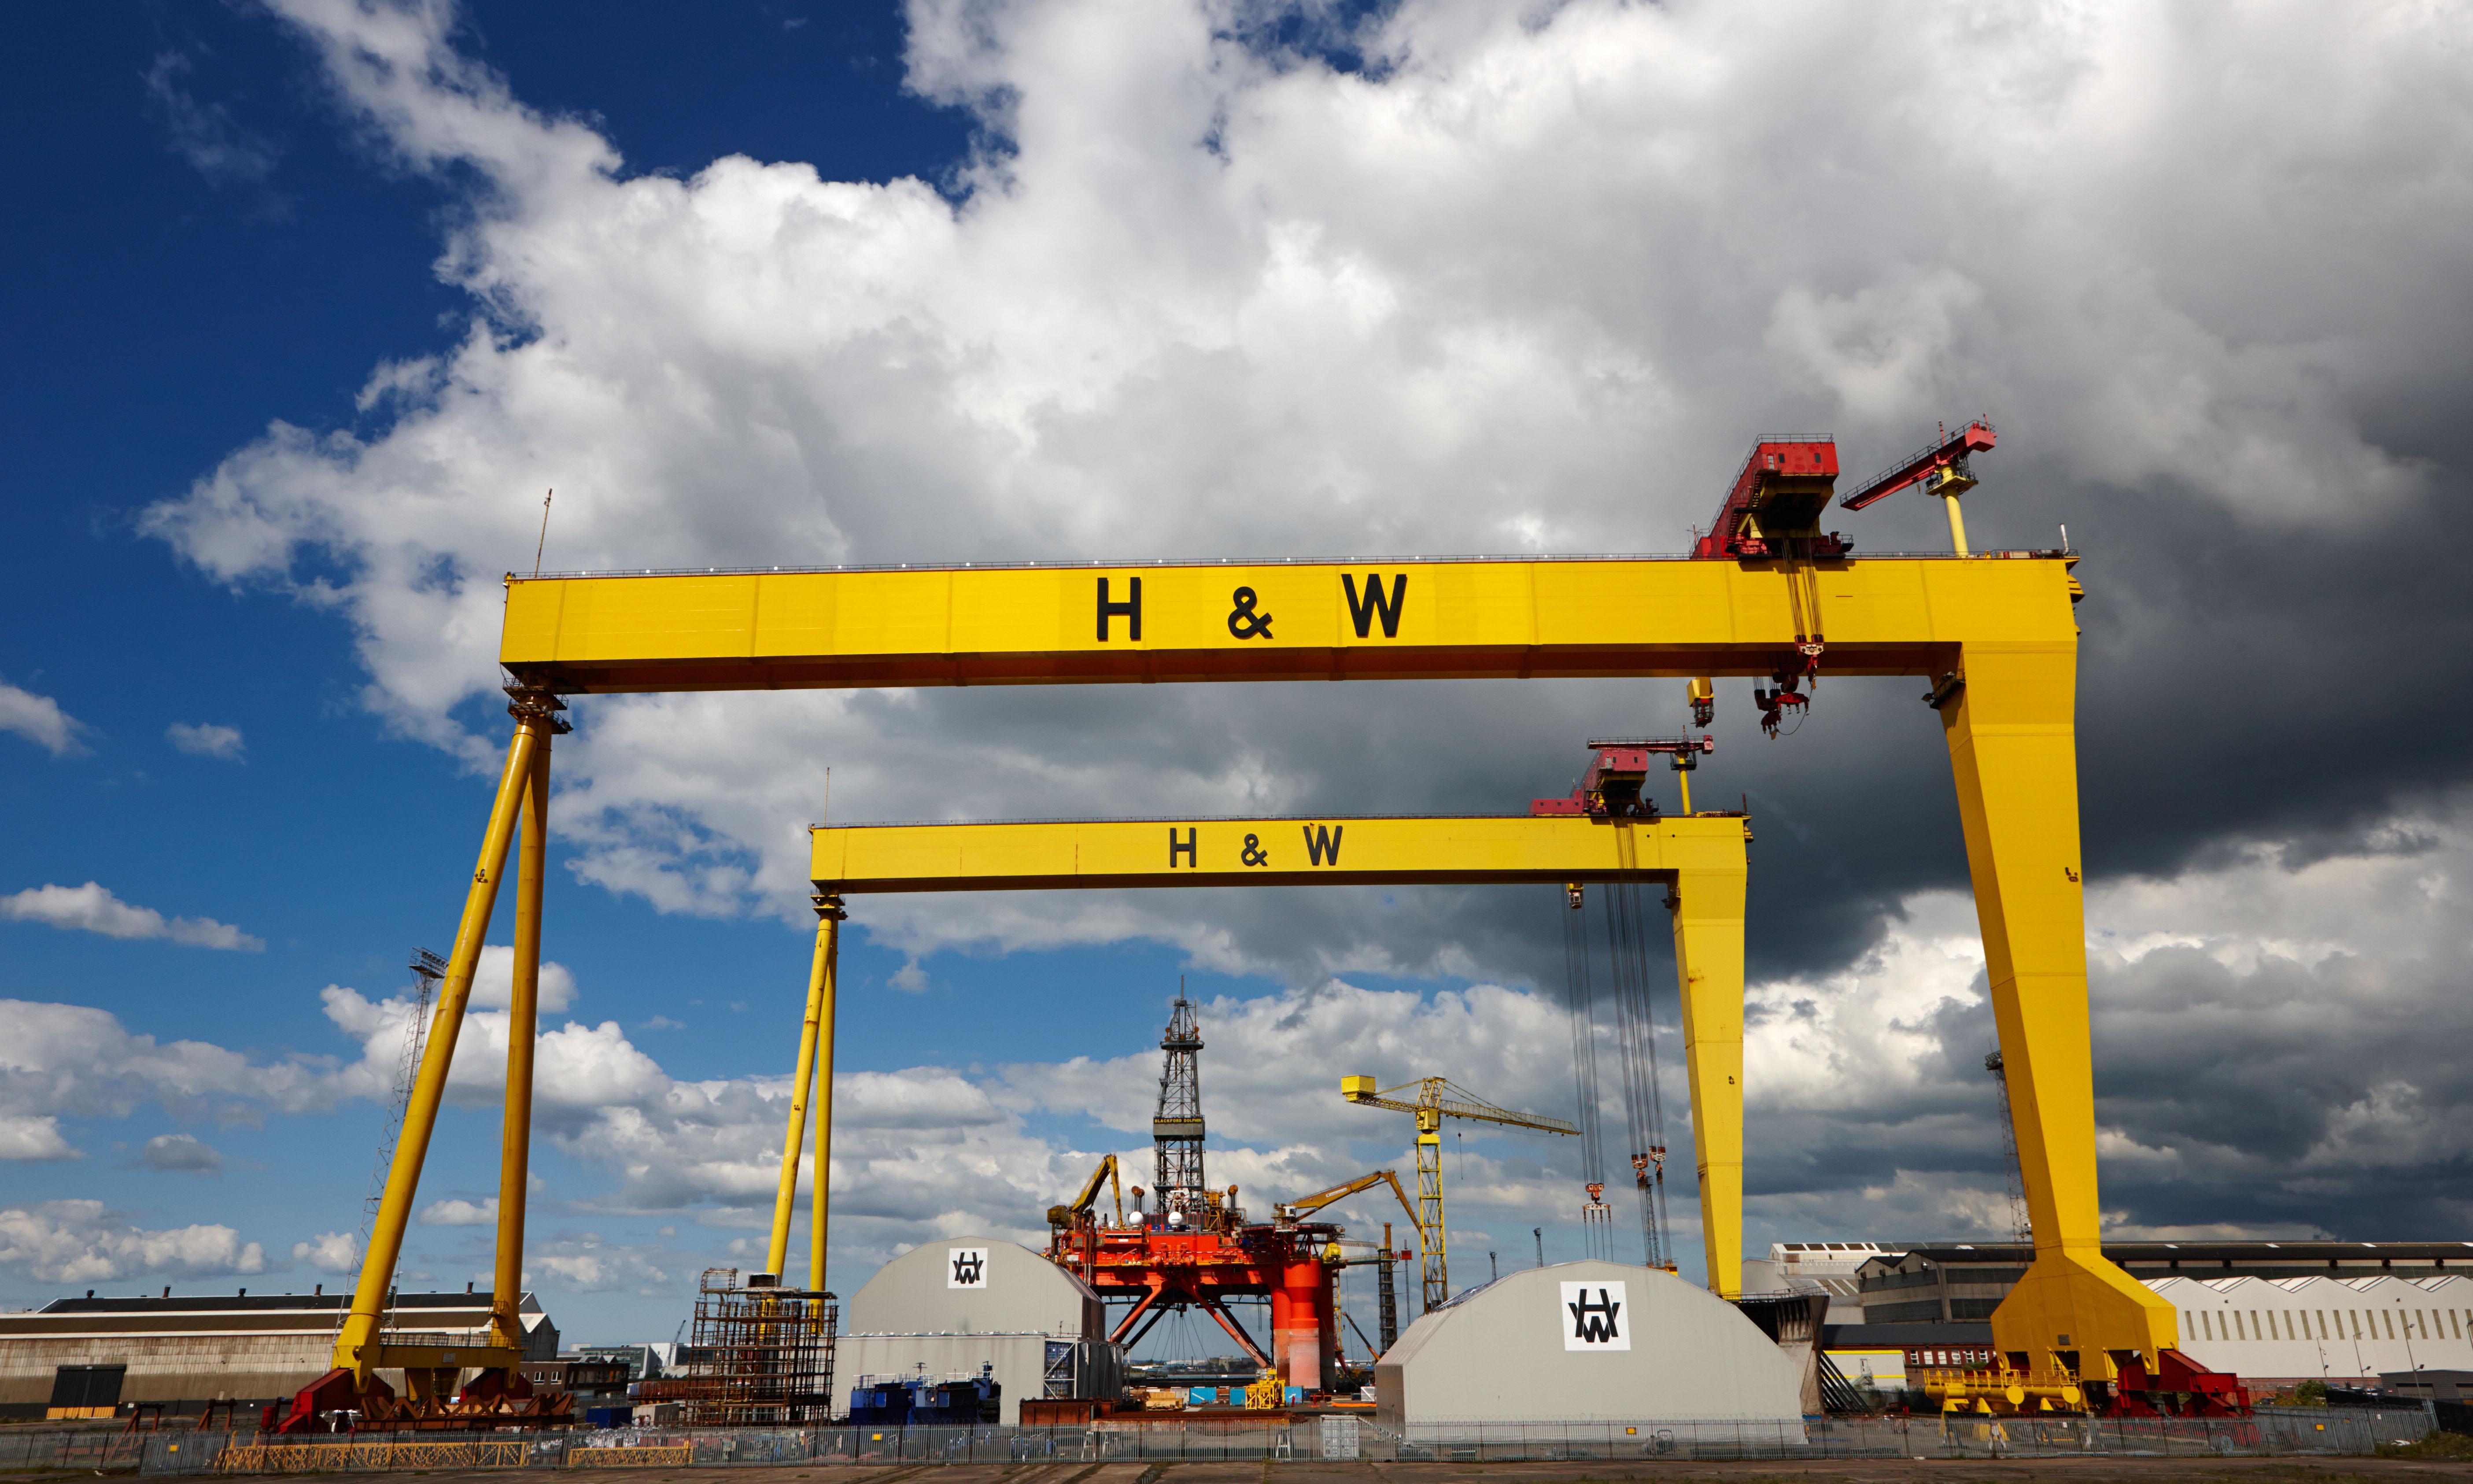 Harland and Wolff saved from closure in £6m rescue deal